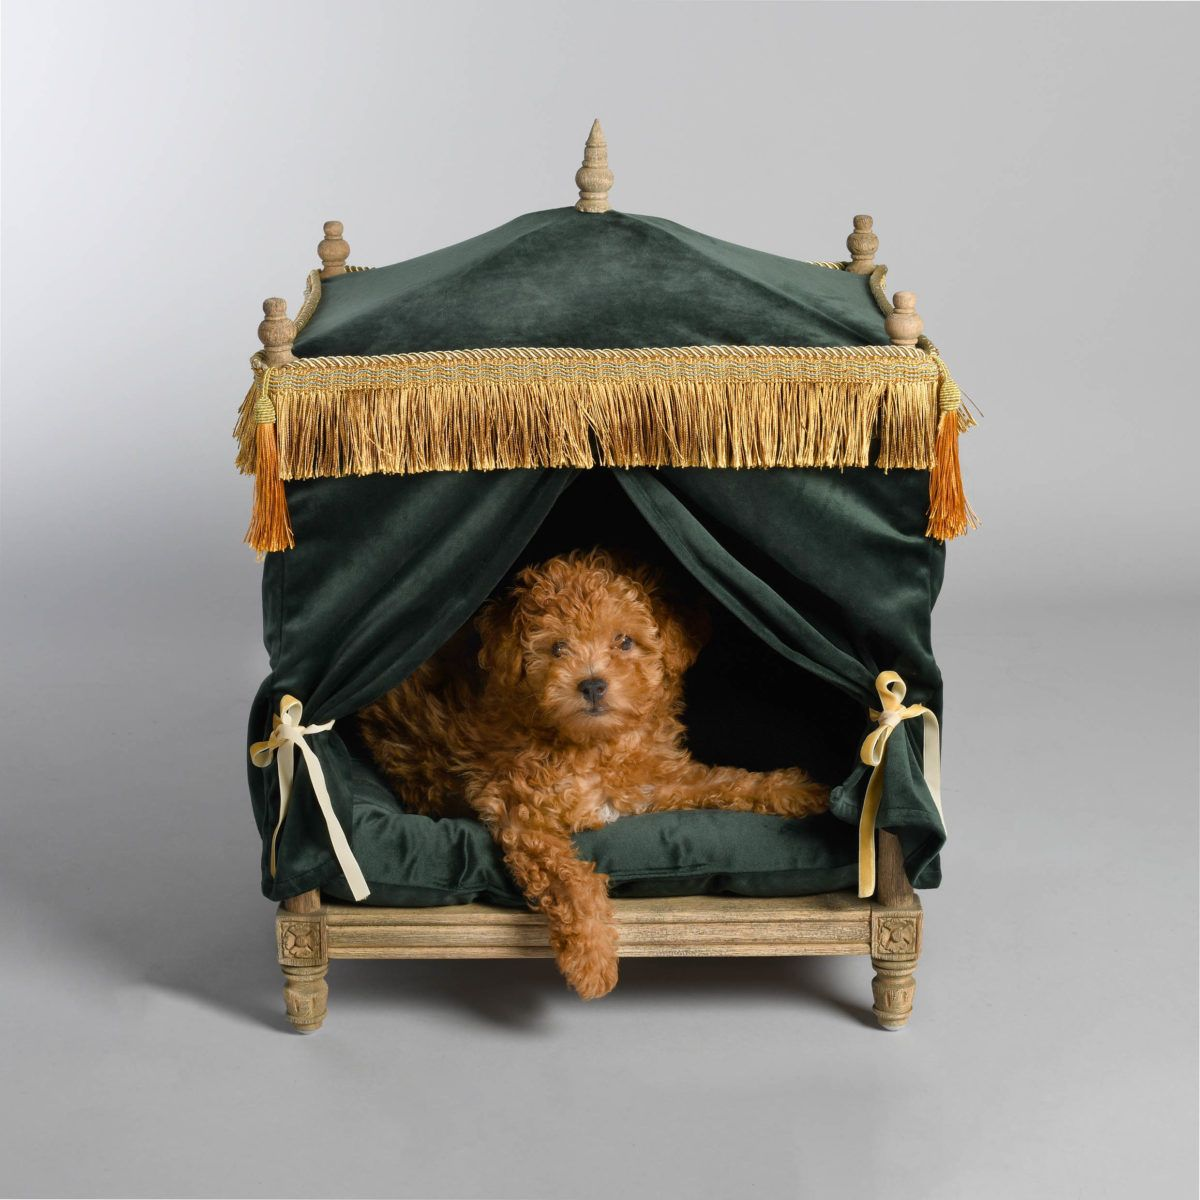 lord Lou the Edward pet bed at lords and labradors